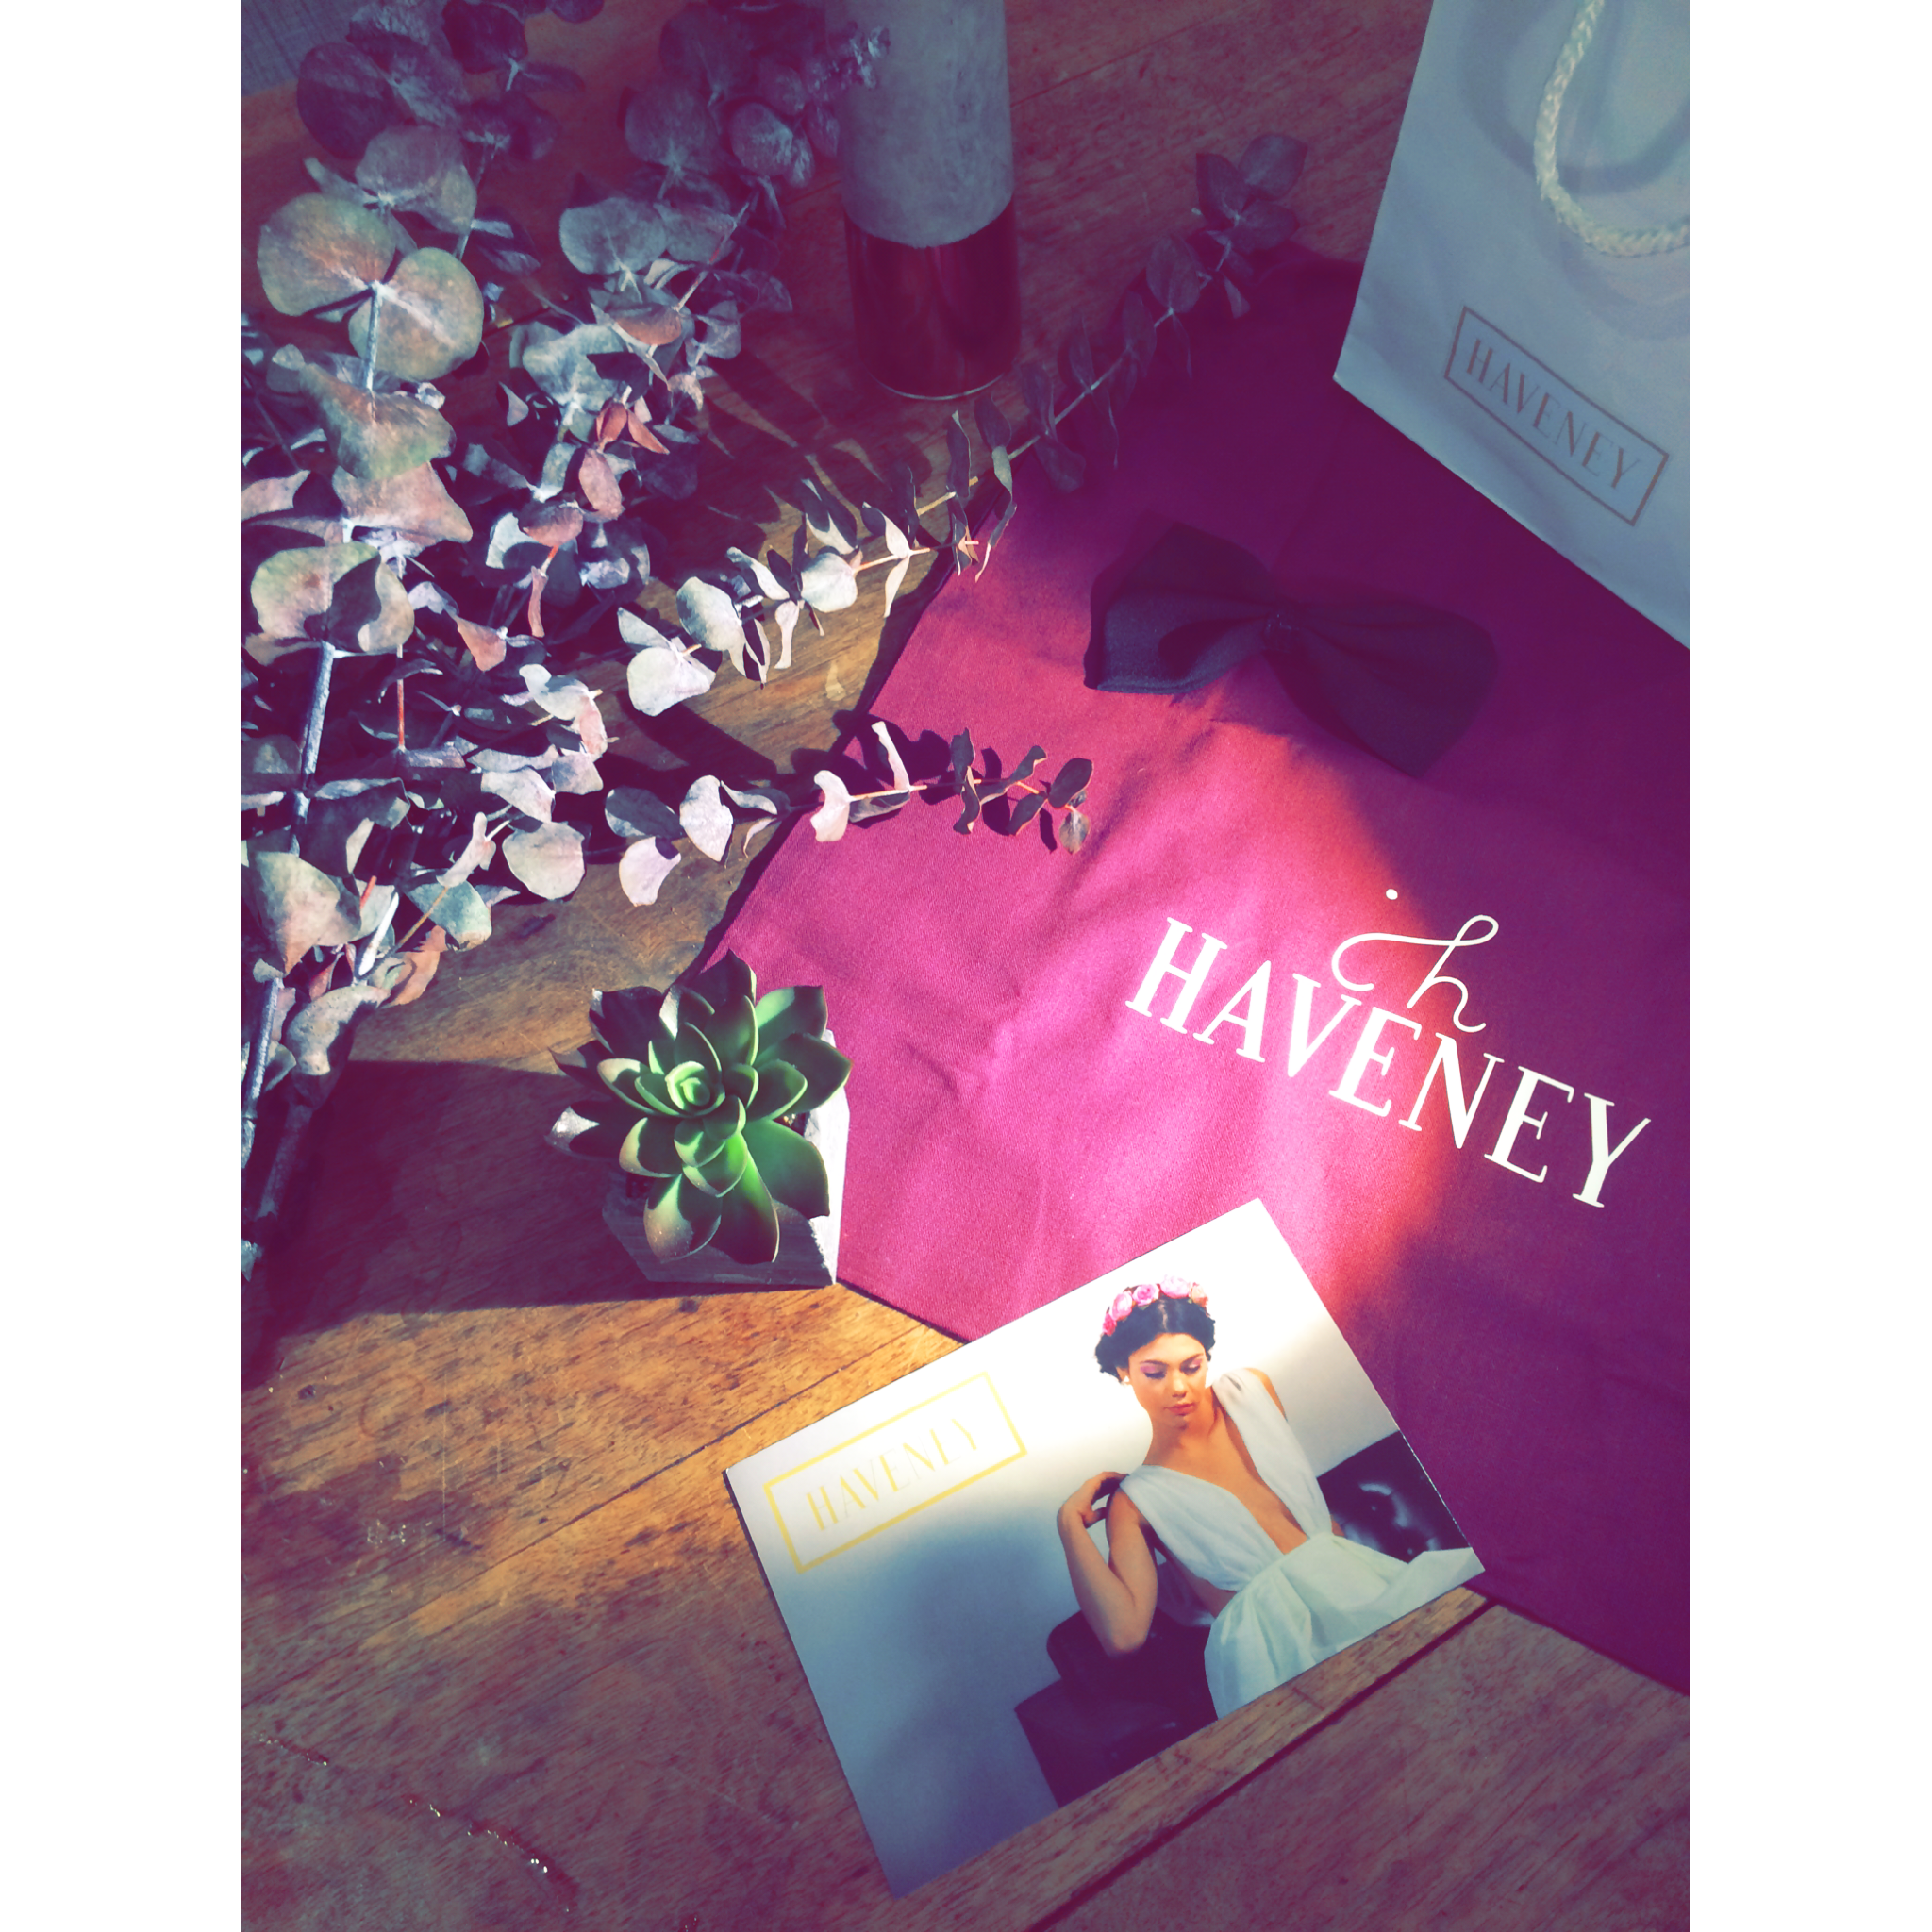 Collection Haveney